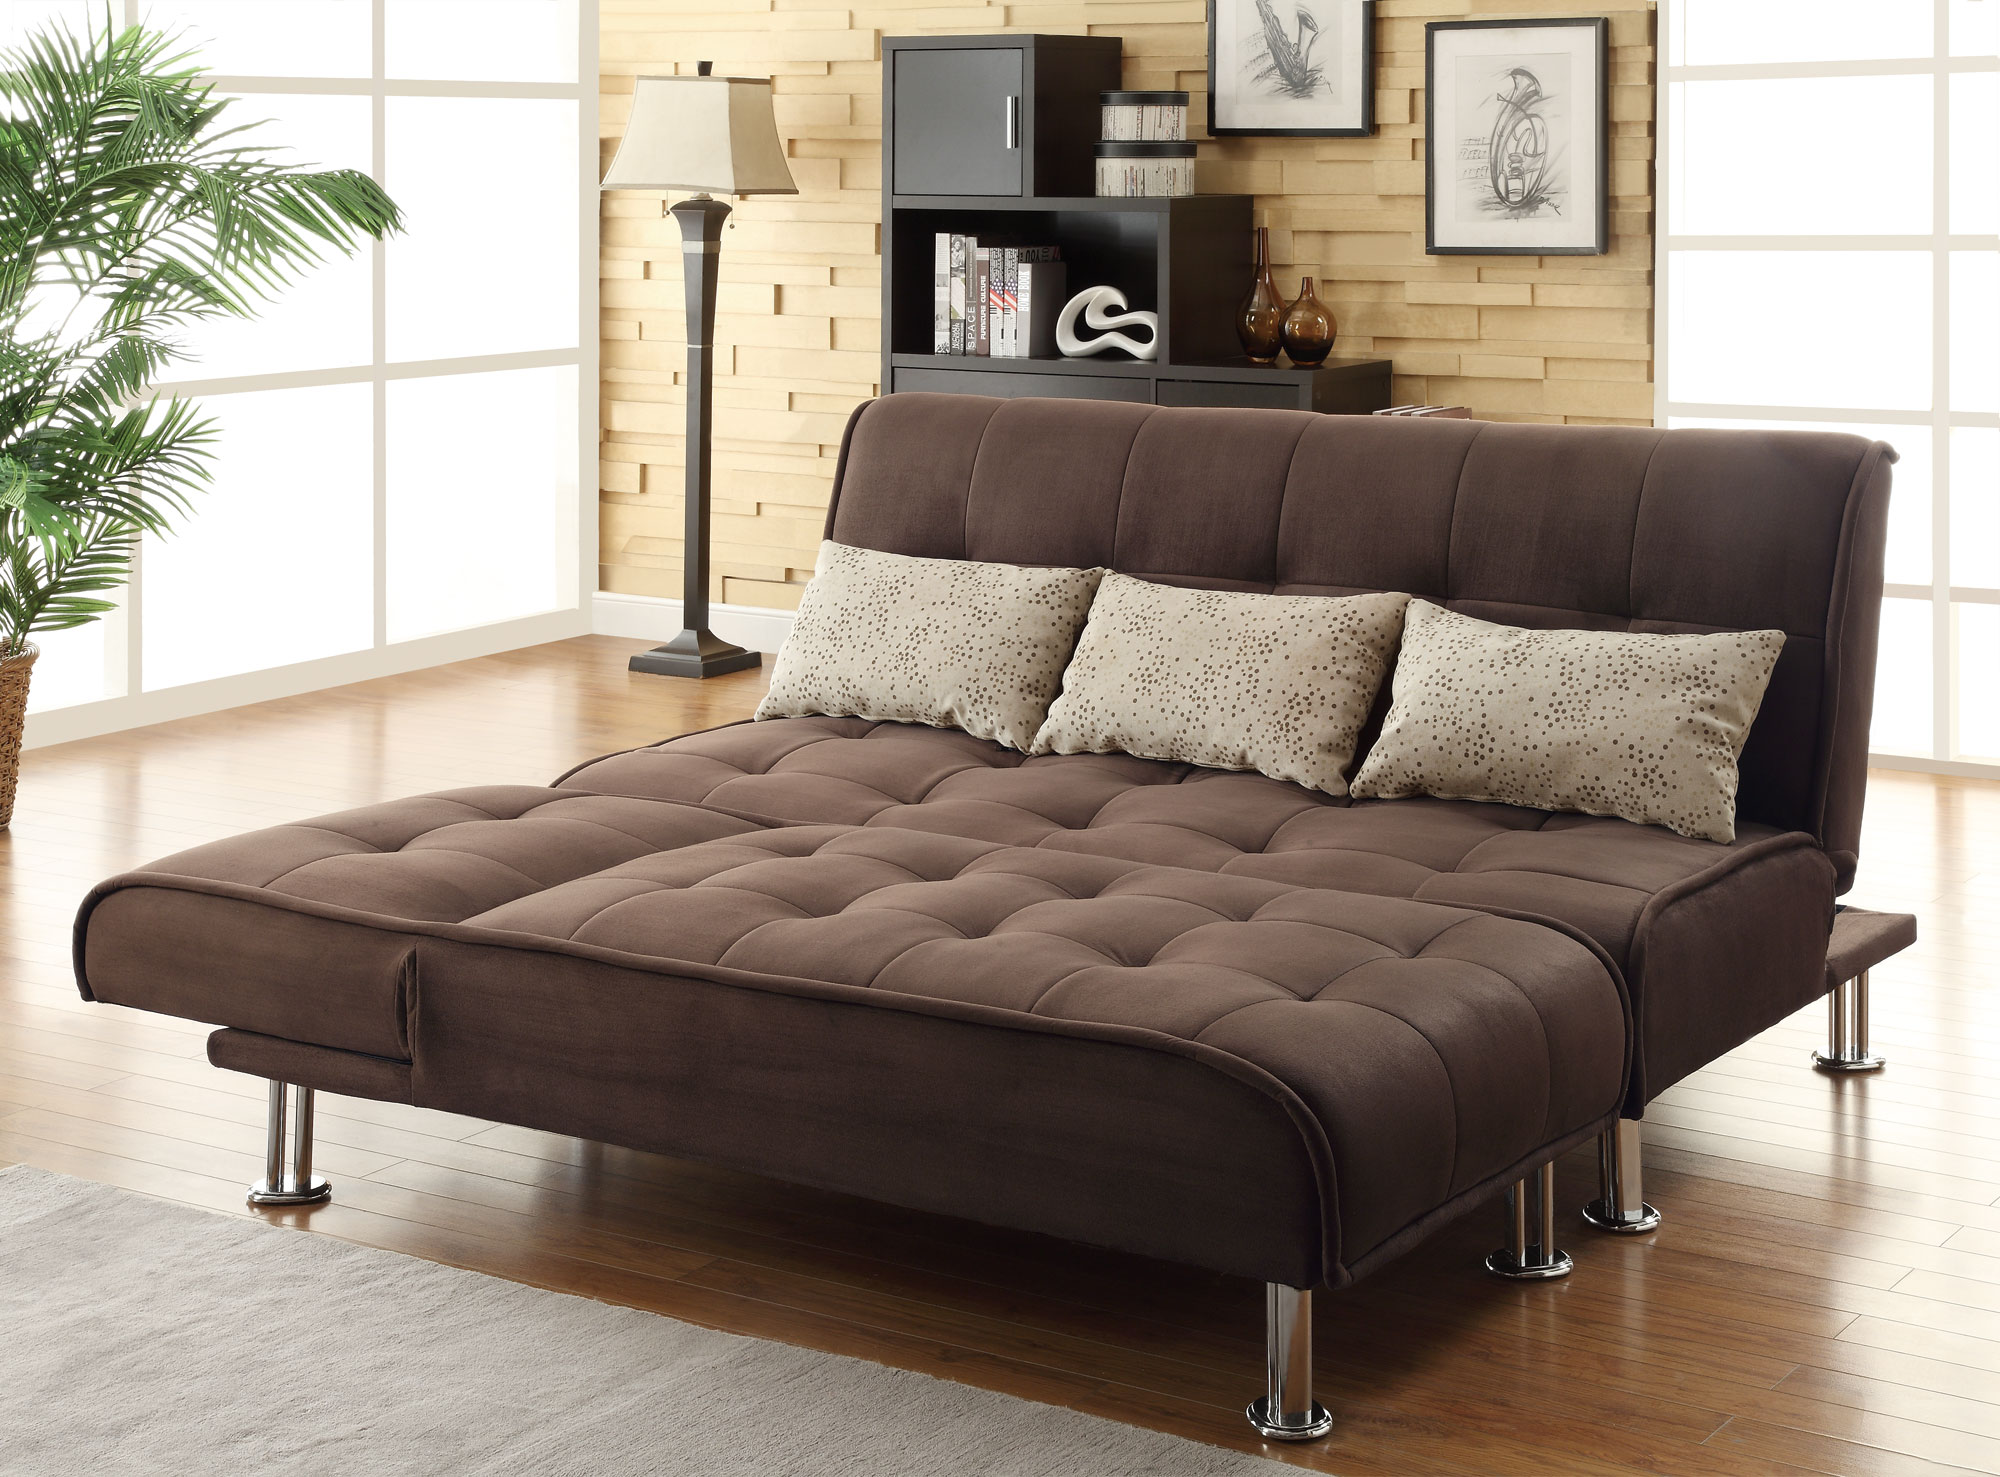 Furniture & Rug Foldable Couch Moheda Sofa Bed